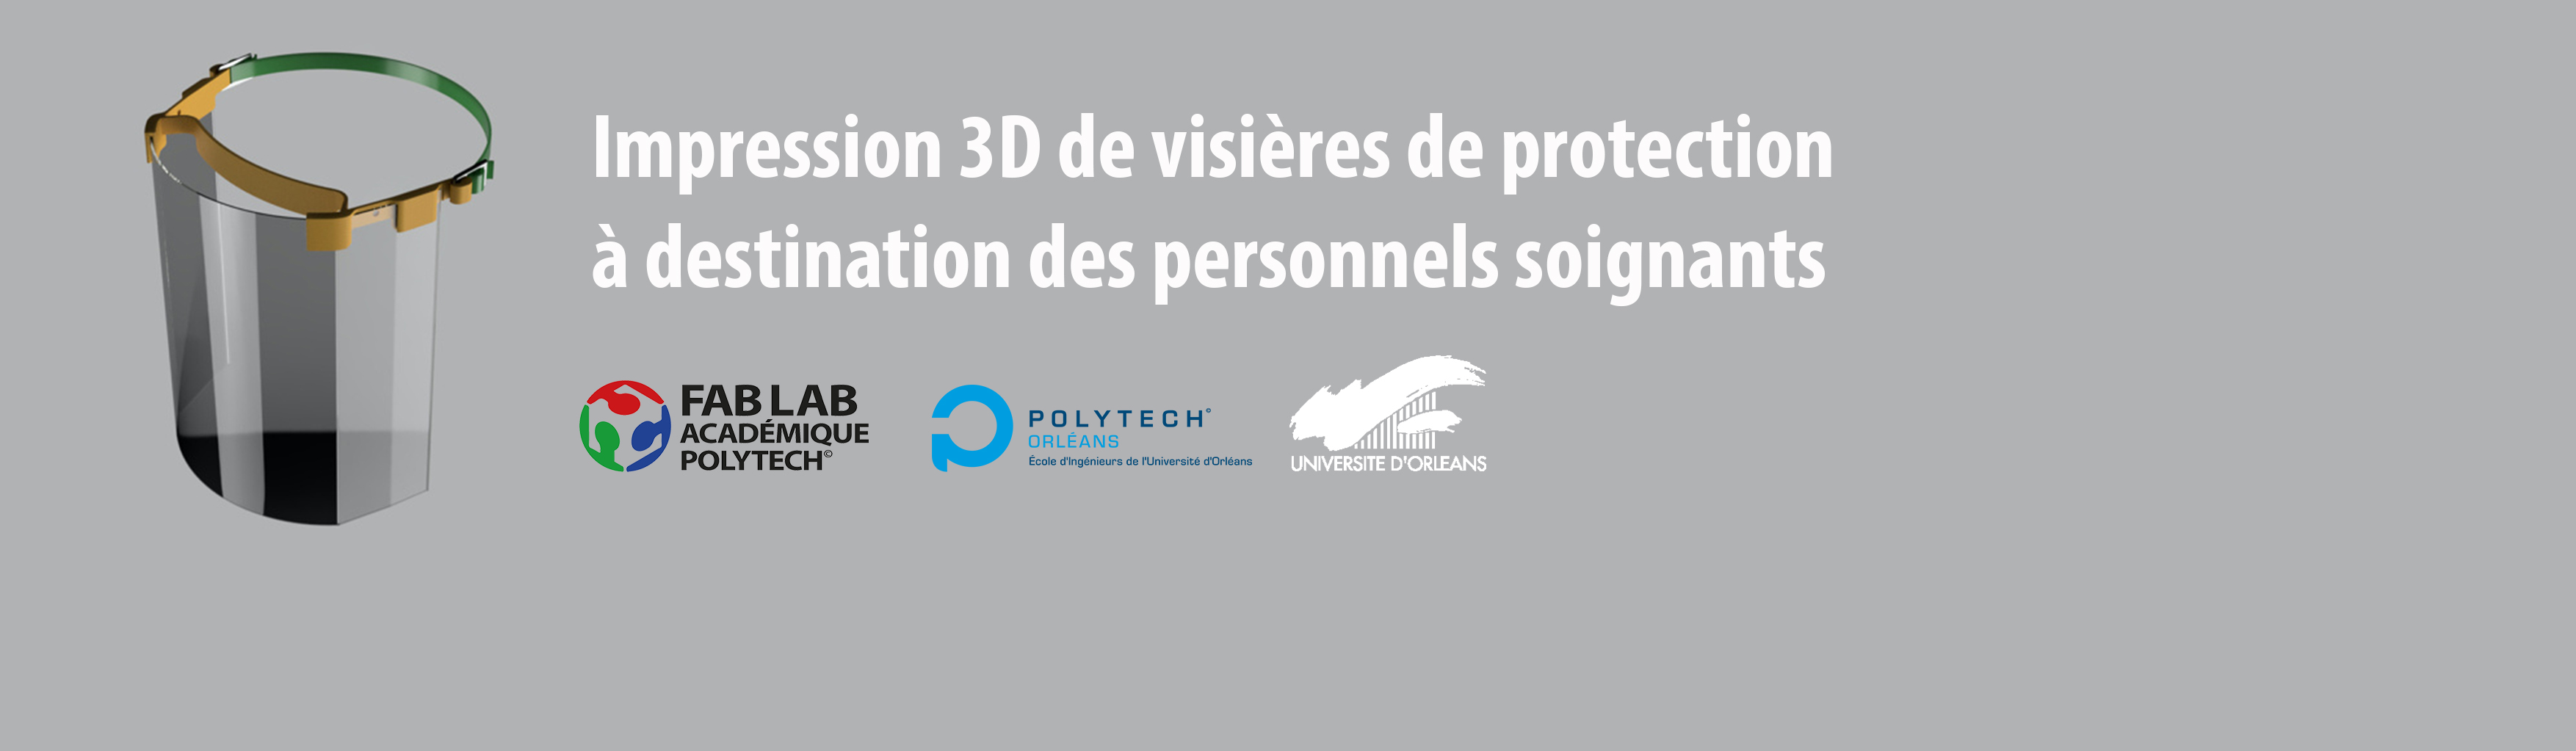 Impression 3D de visières de protection à destination des personnels soignants